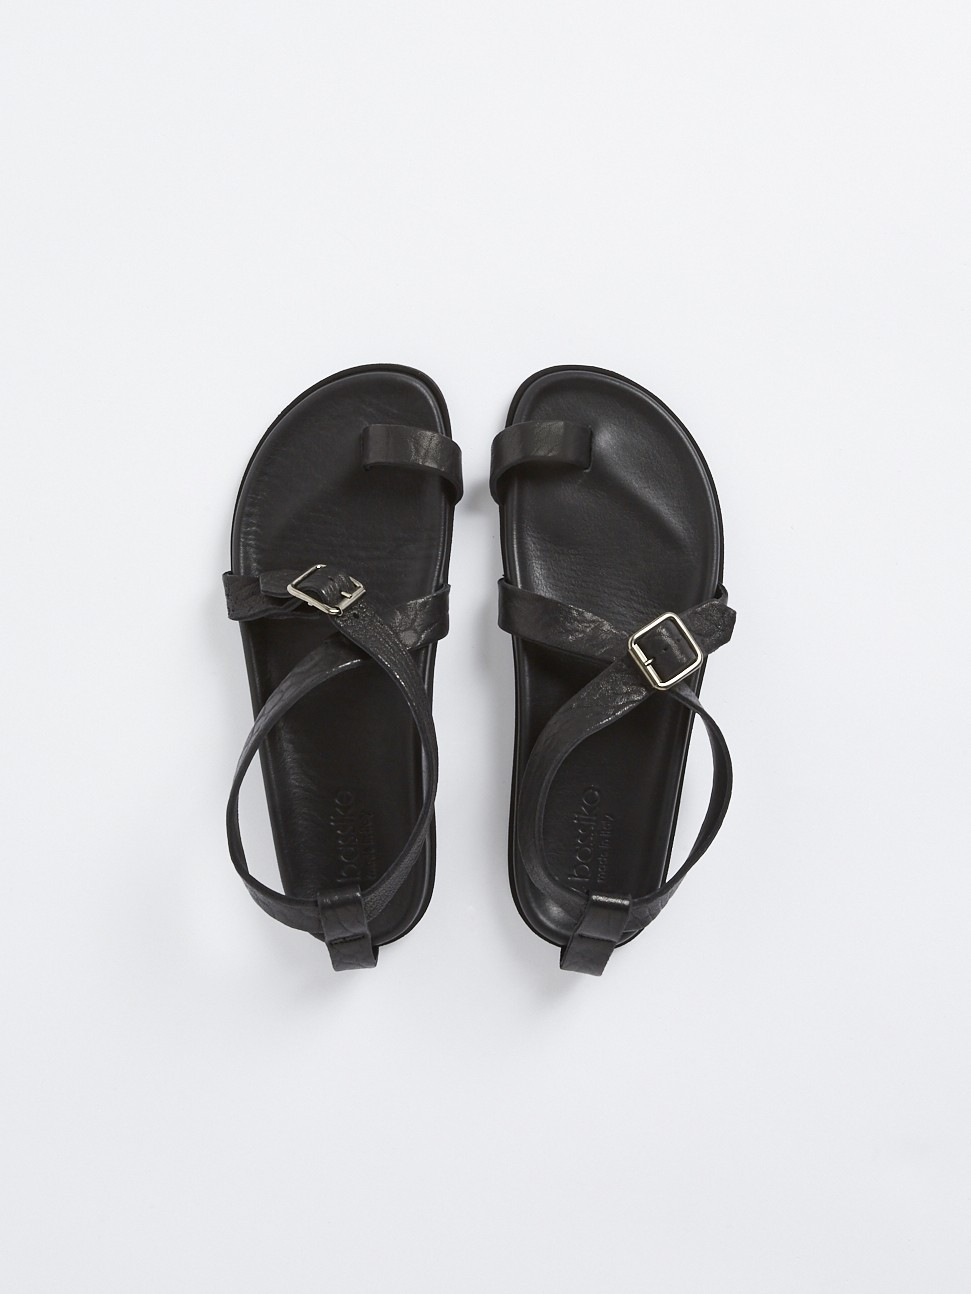 Bassike Leather sandal $520